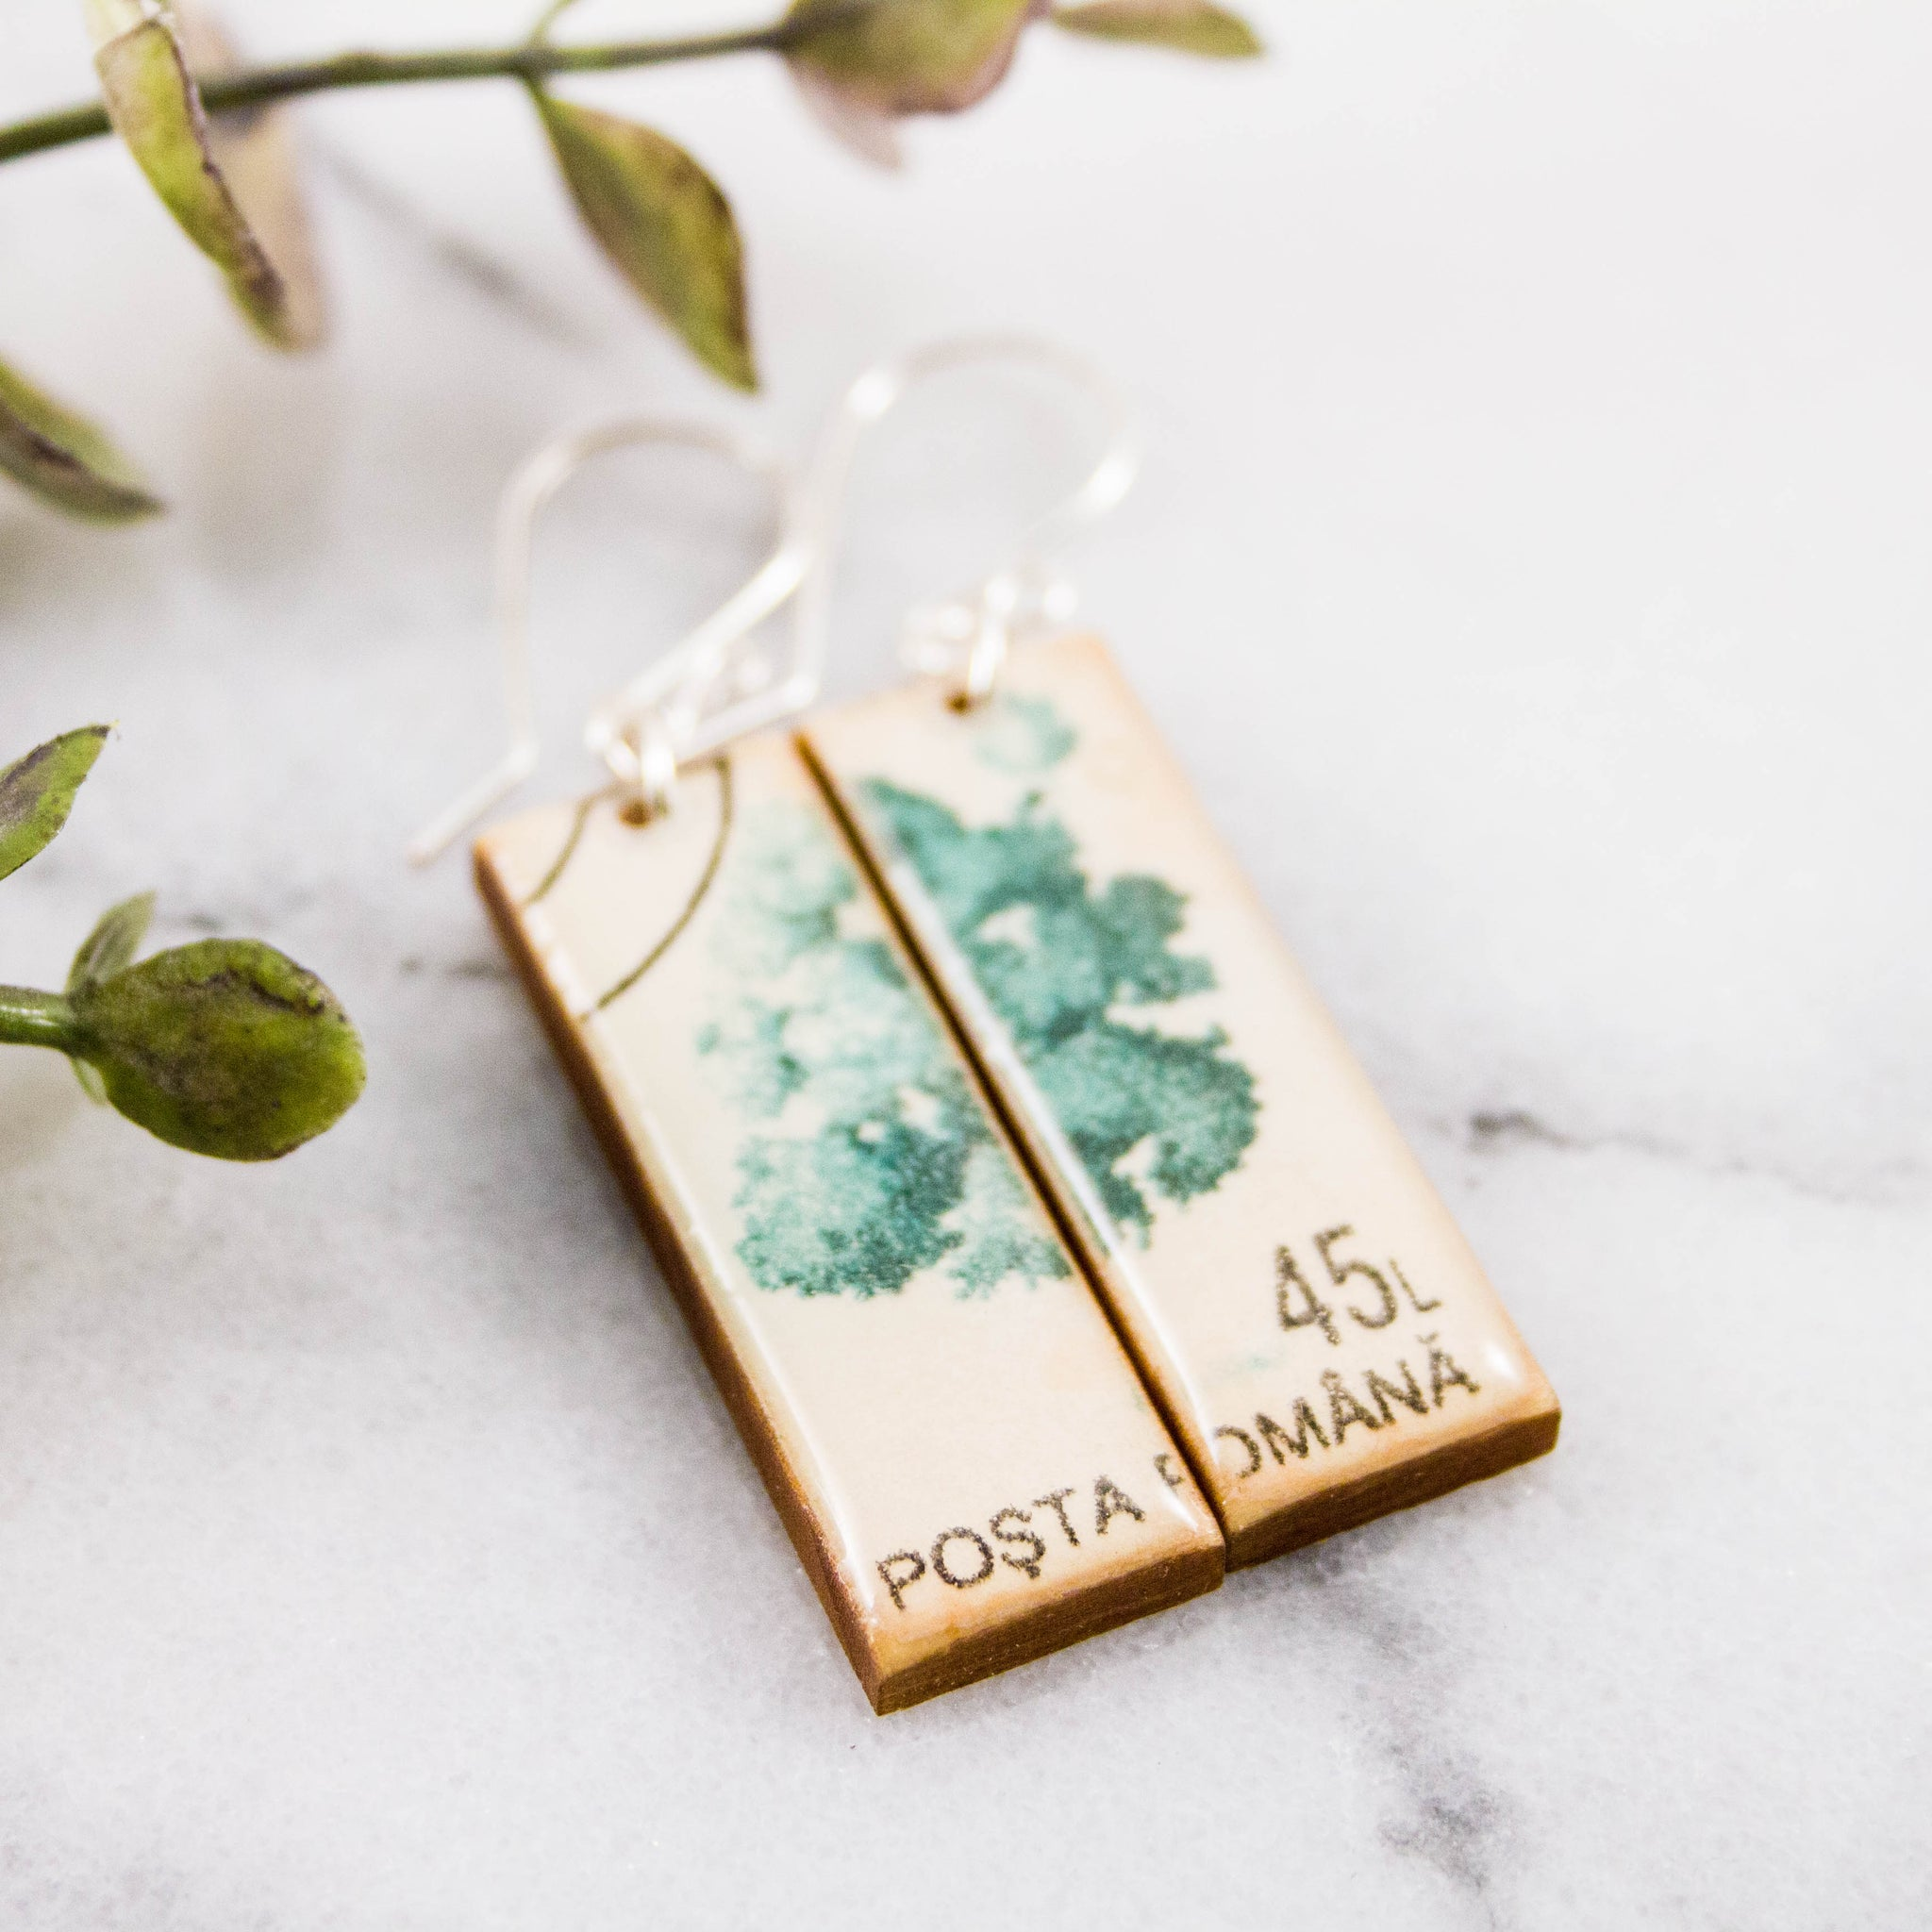 ROMANIA- Vintage Tree Postage Stamp Earrings